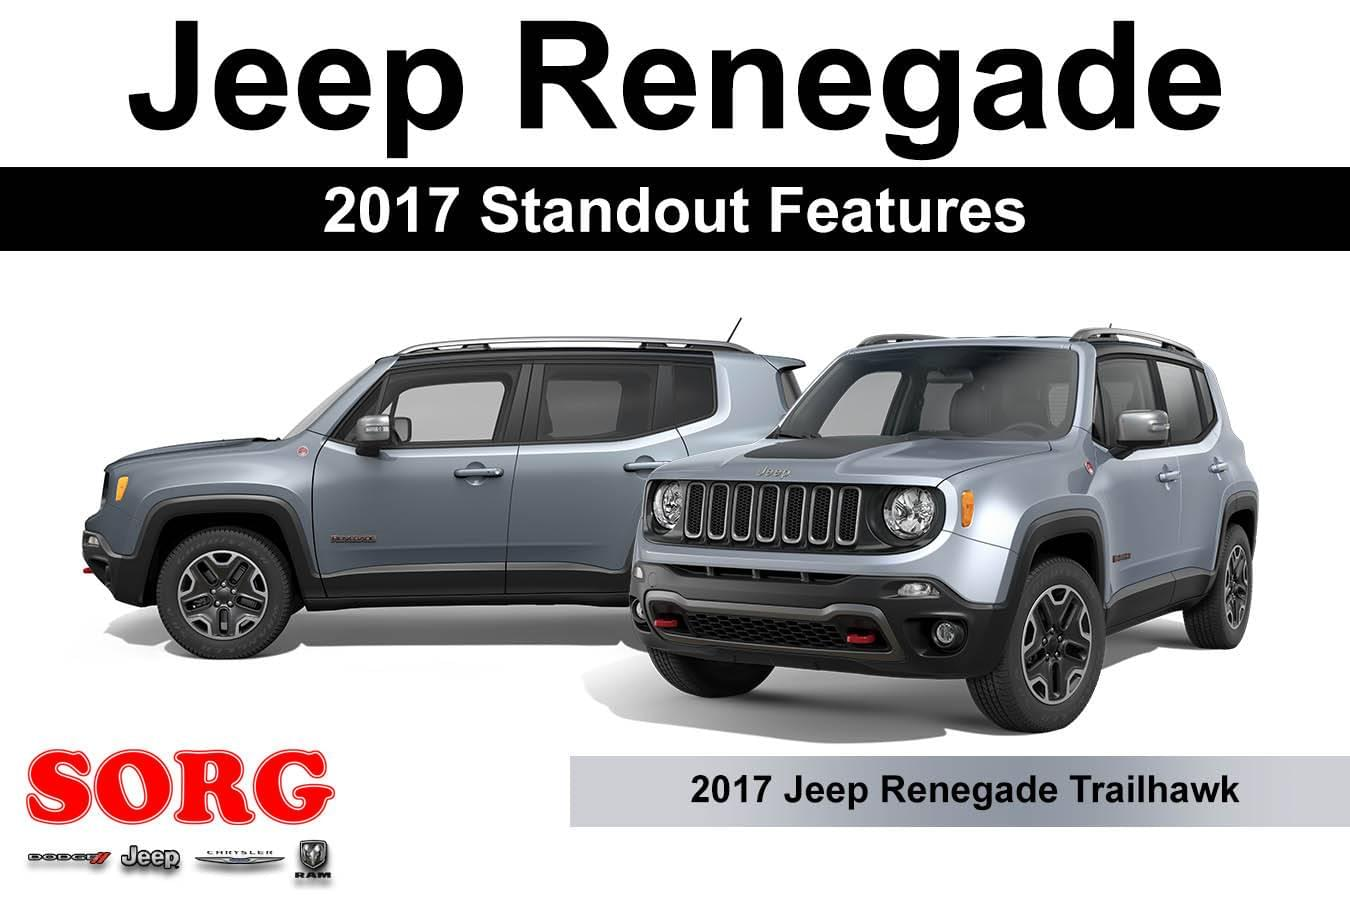 2017 Jeep Renegade Standout Features